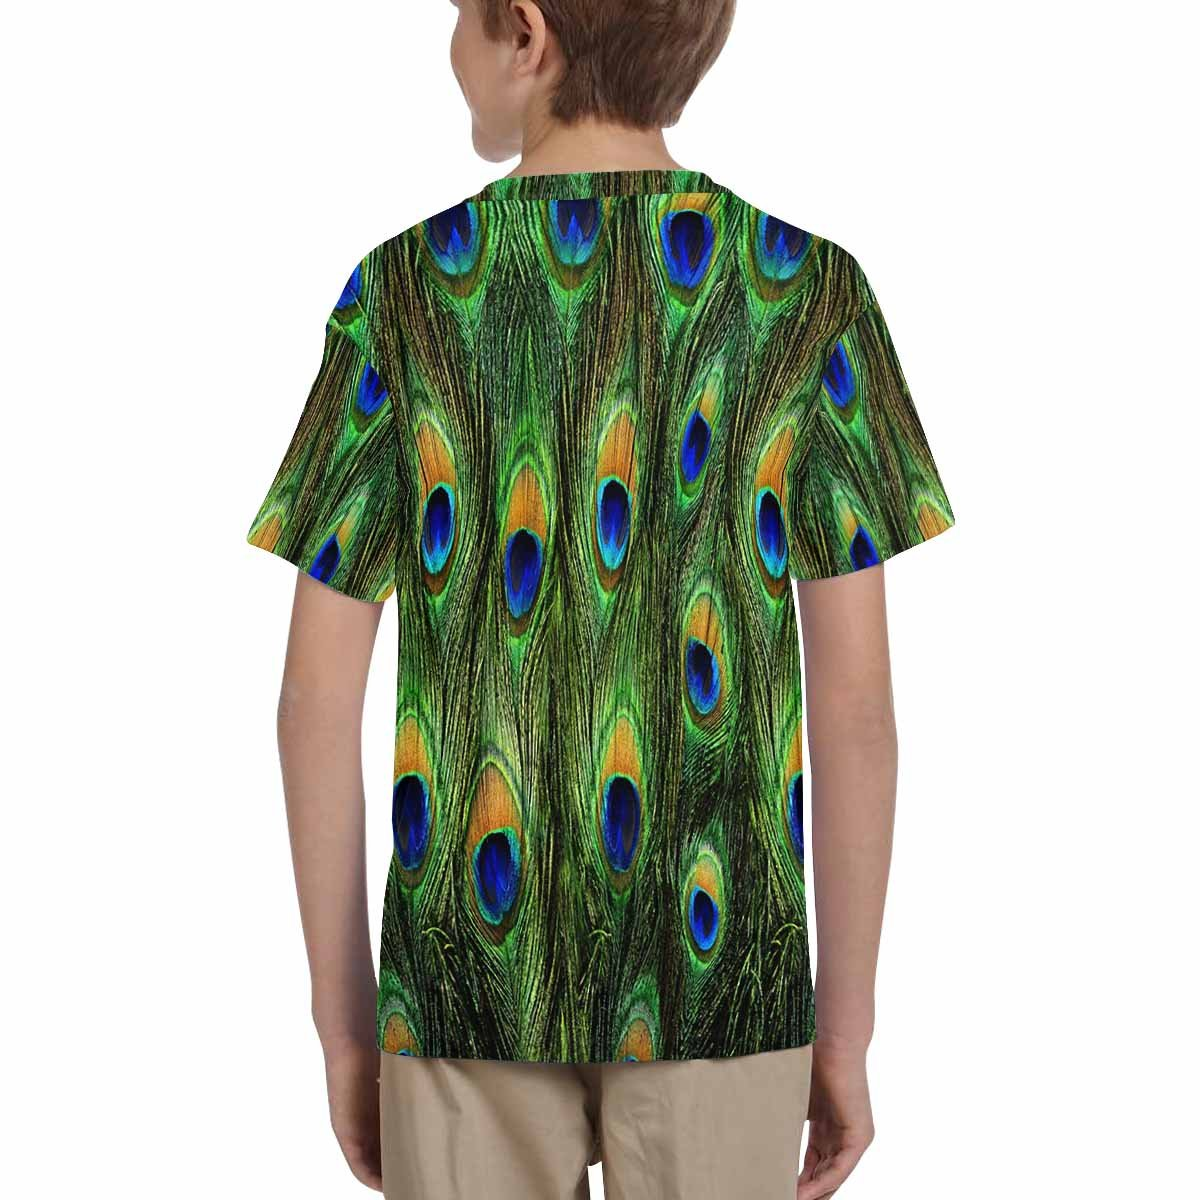 INTERESTPRINT Childs T-Shirt Peacock Feather XS-XL